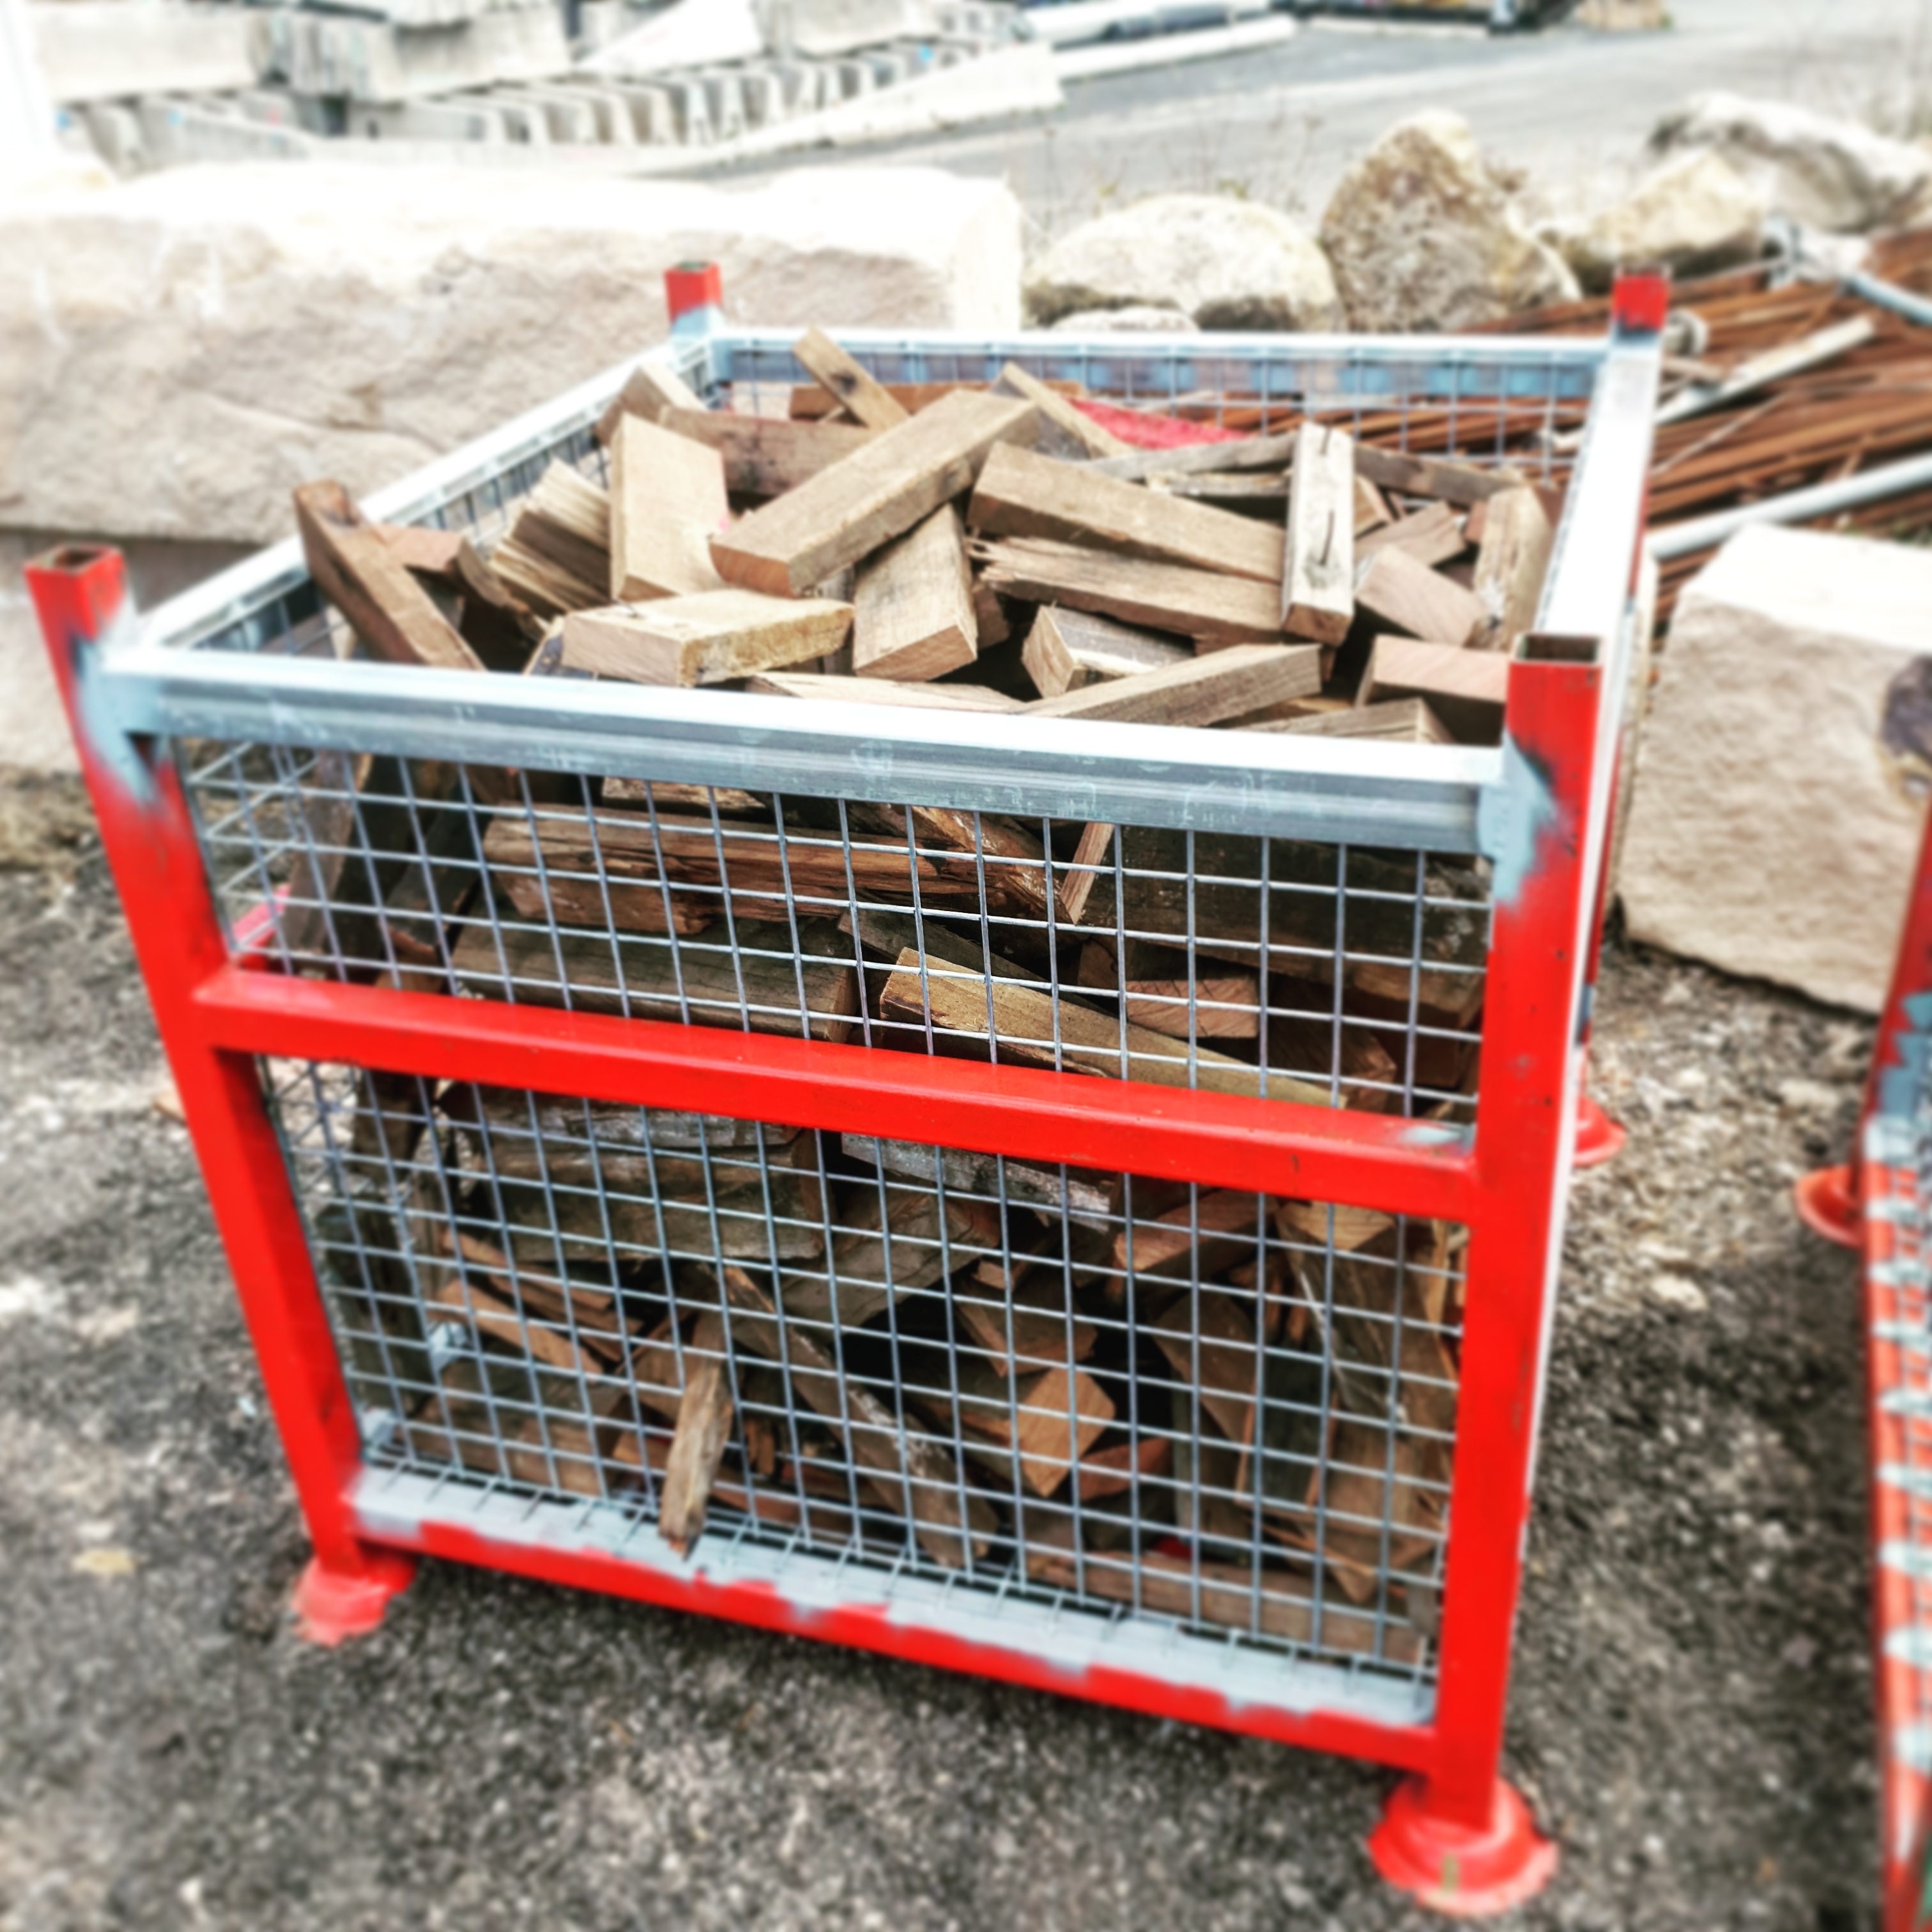 Quality seasoned hardwood cut in manageable lengths for indoor or outdoor fire places ~ 